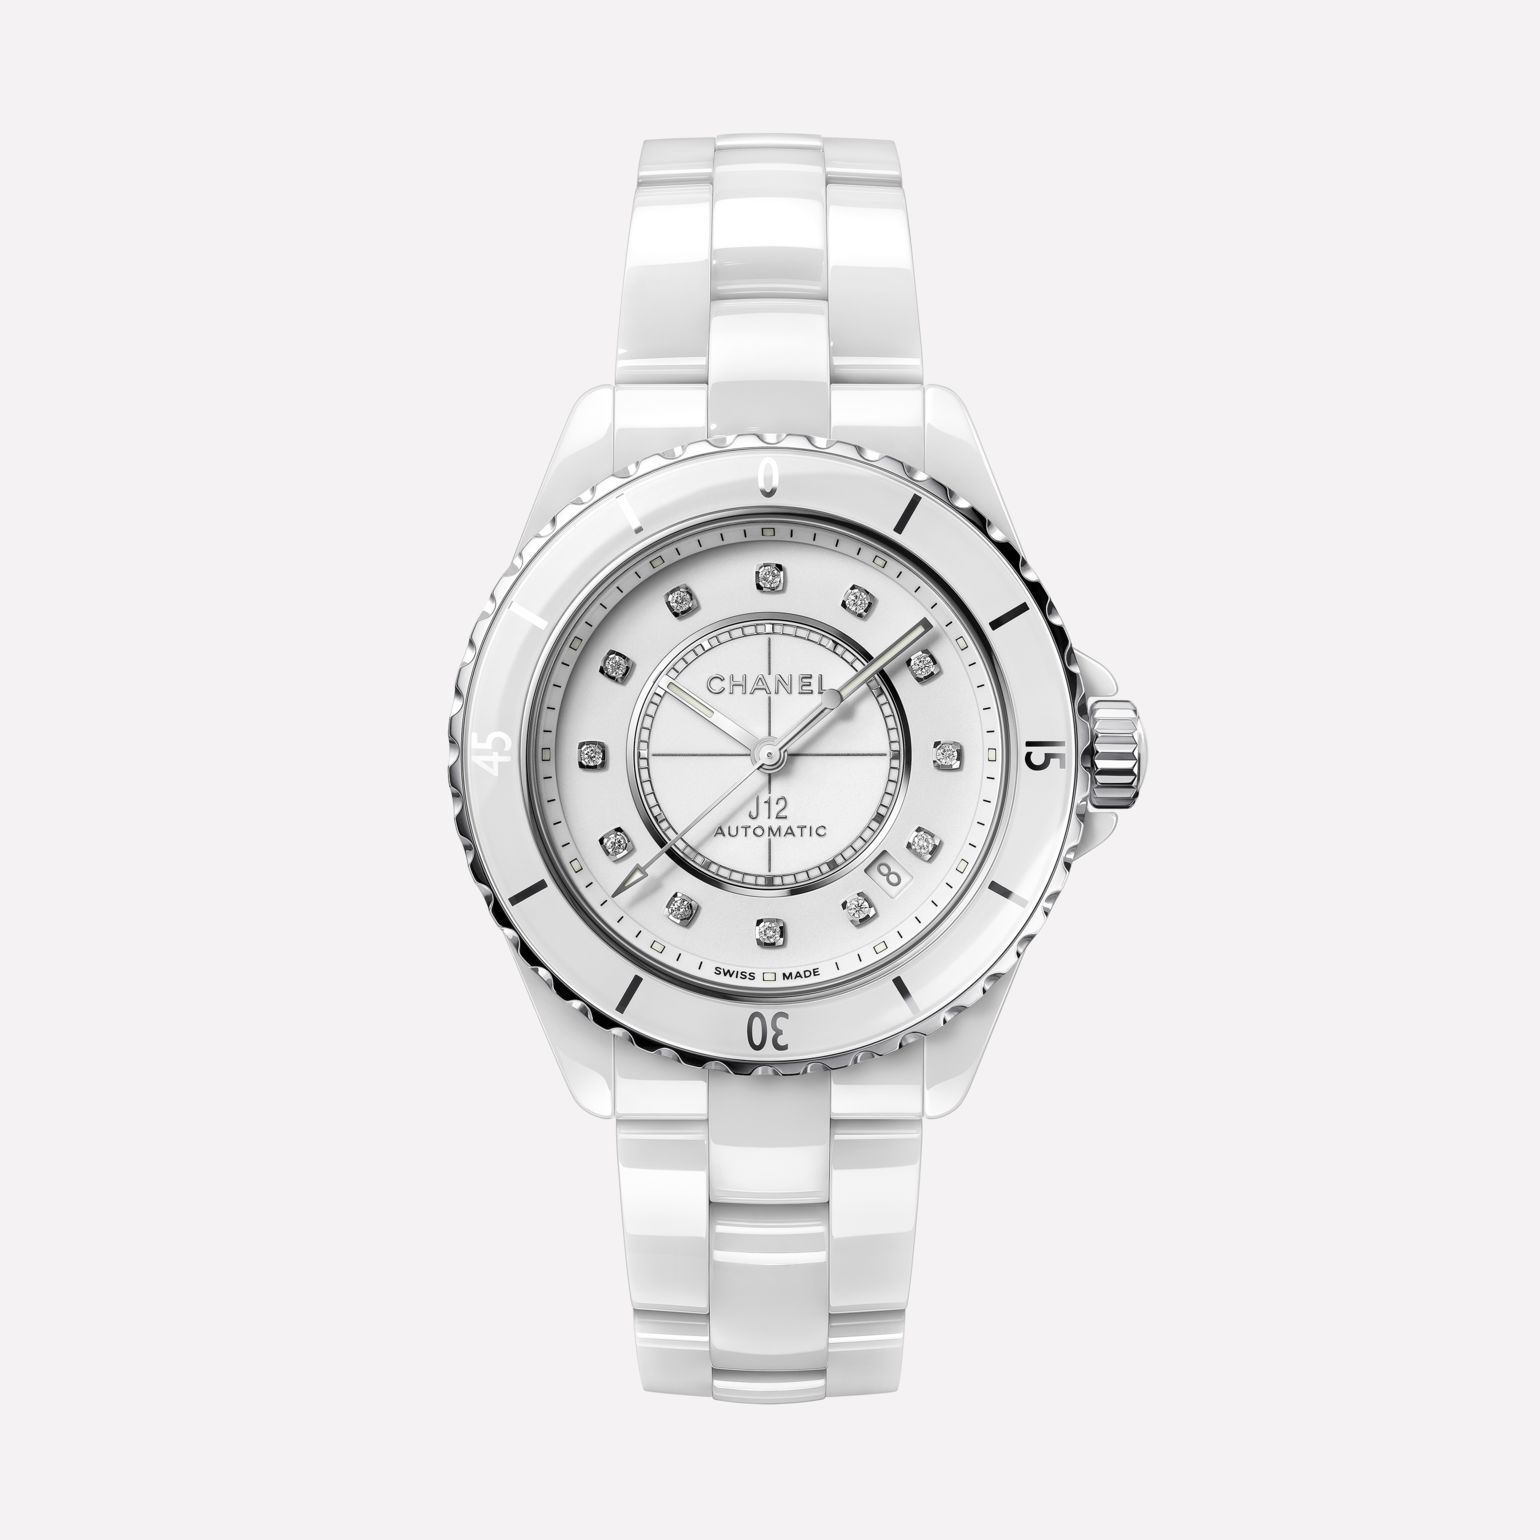 J12 Watch Caliber 12.1, 38 mm White highly resistant ceramic, steel and diamonds